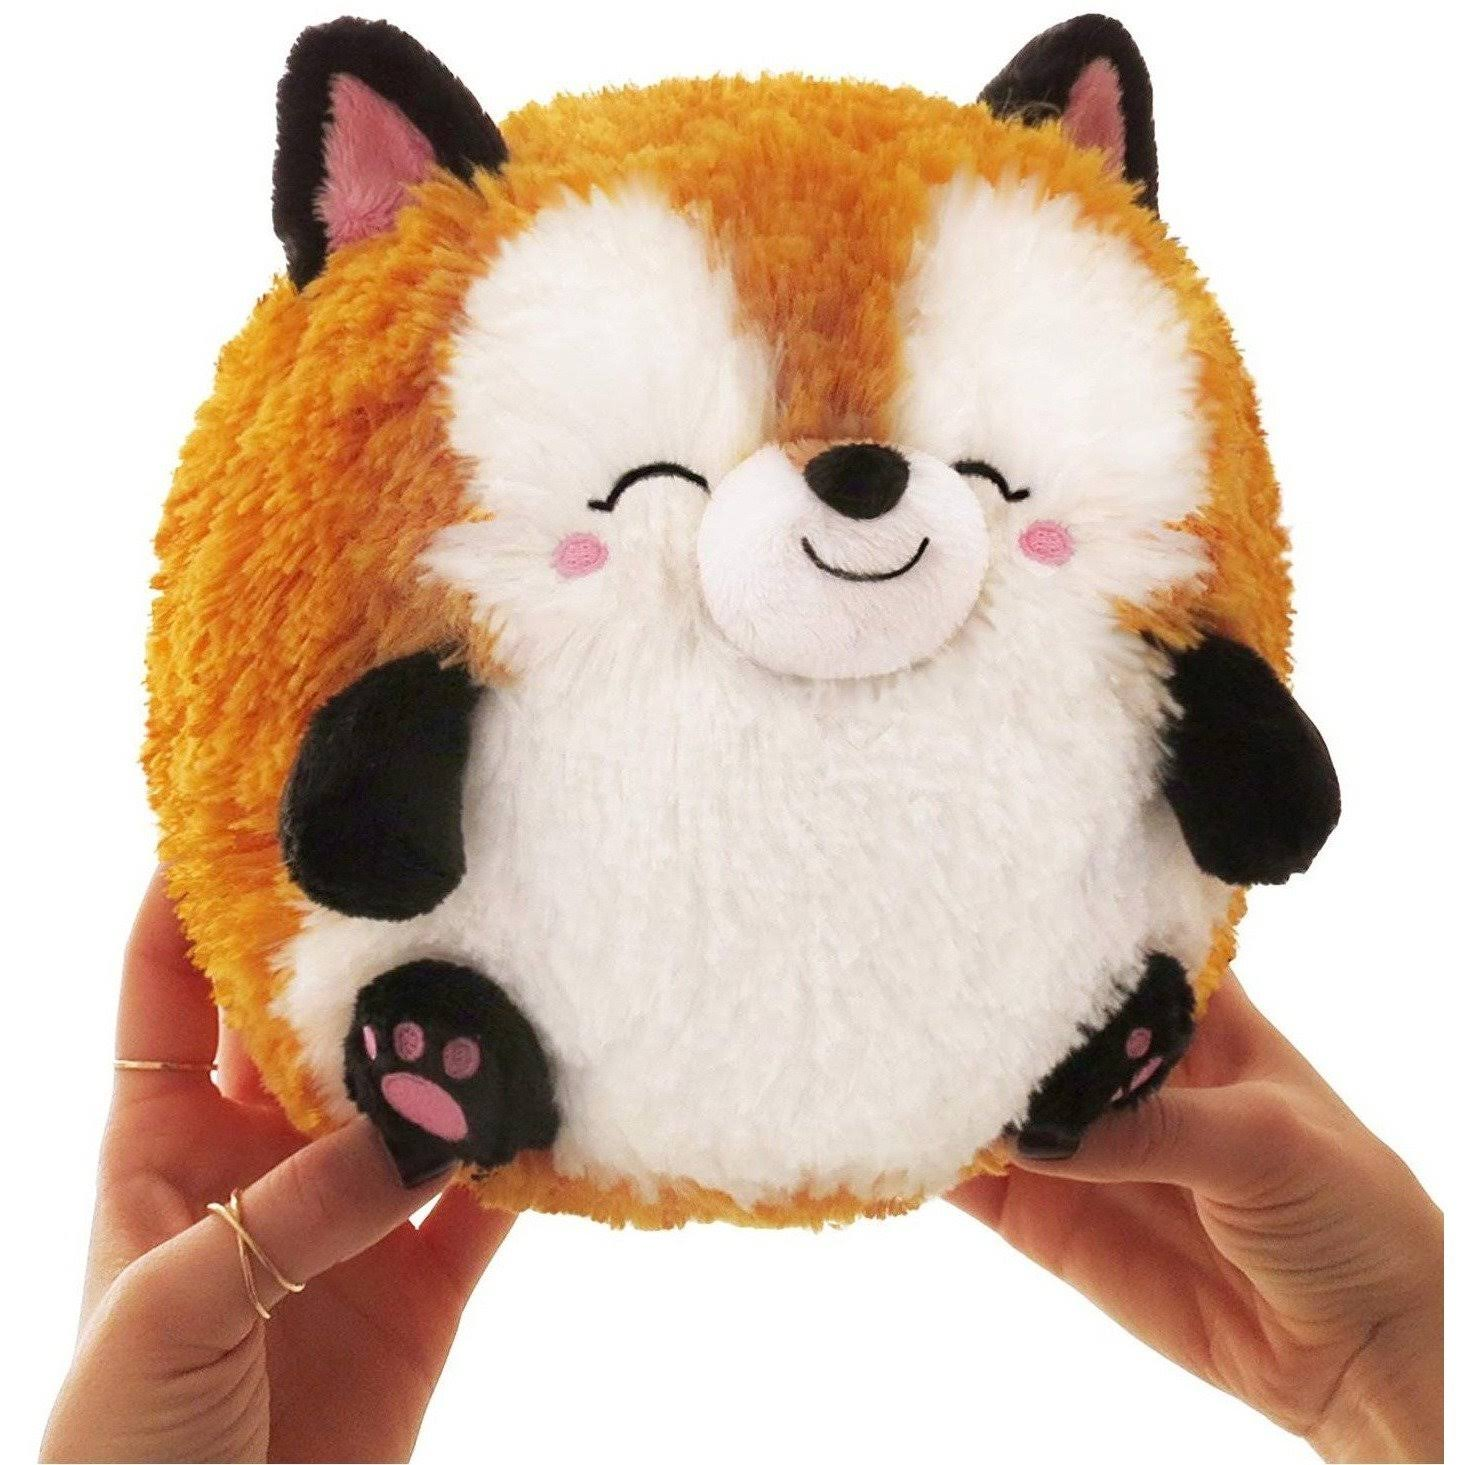 Squishable Baby Fox Mini Stuffed Animal Toy - 7""